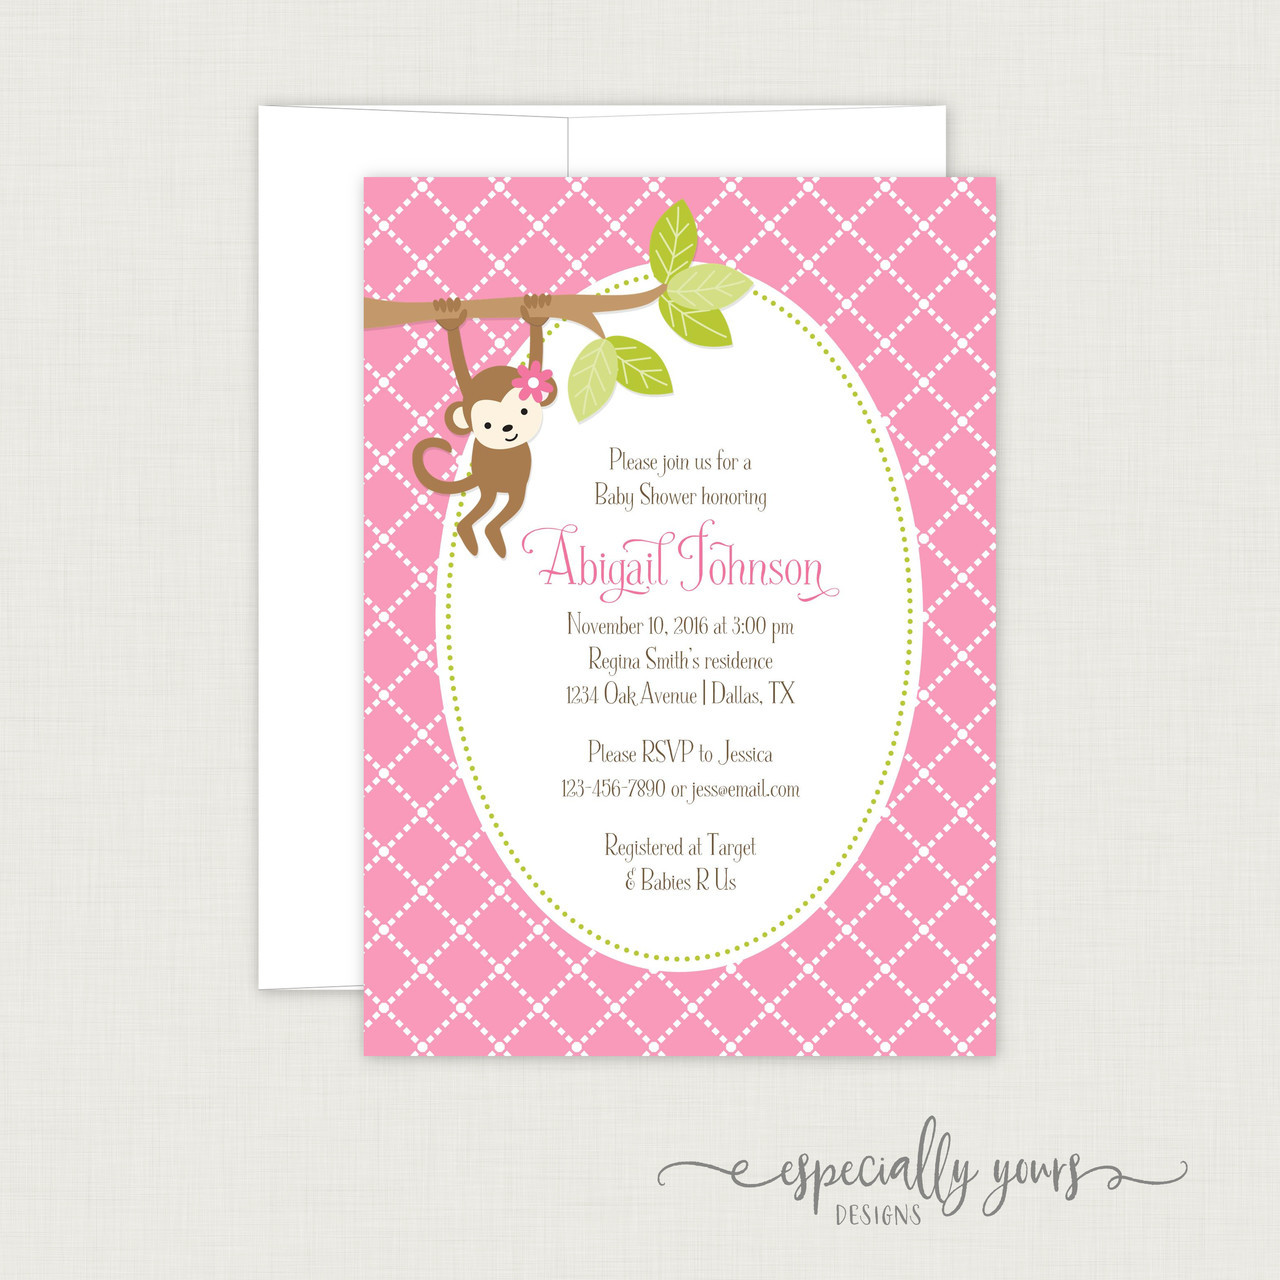 Pink Monkey Baby Shower Invitation Especially Yours Designs